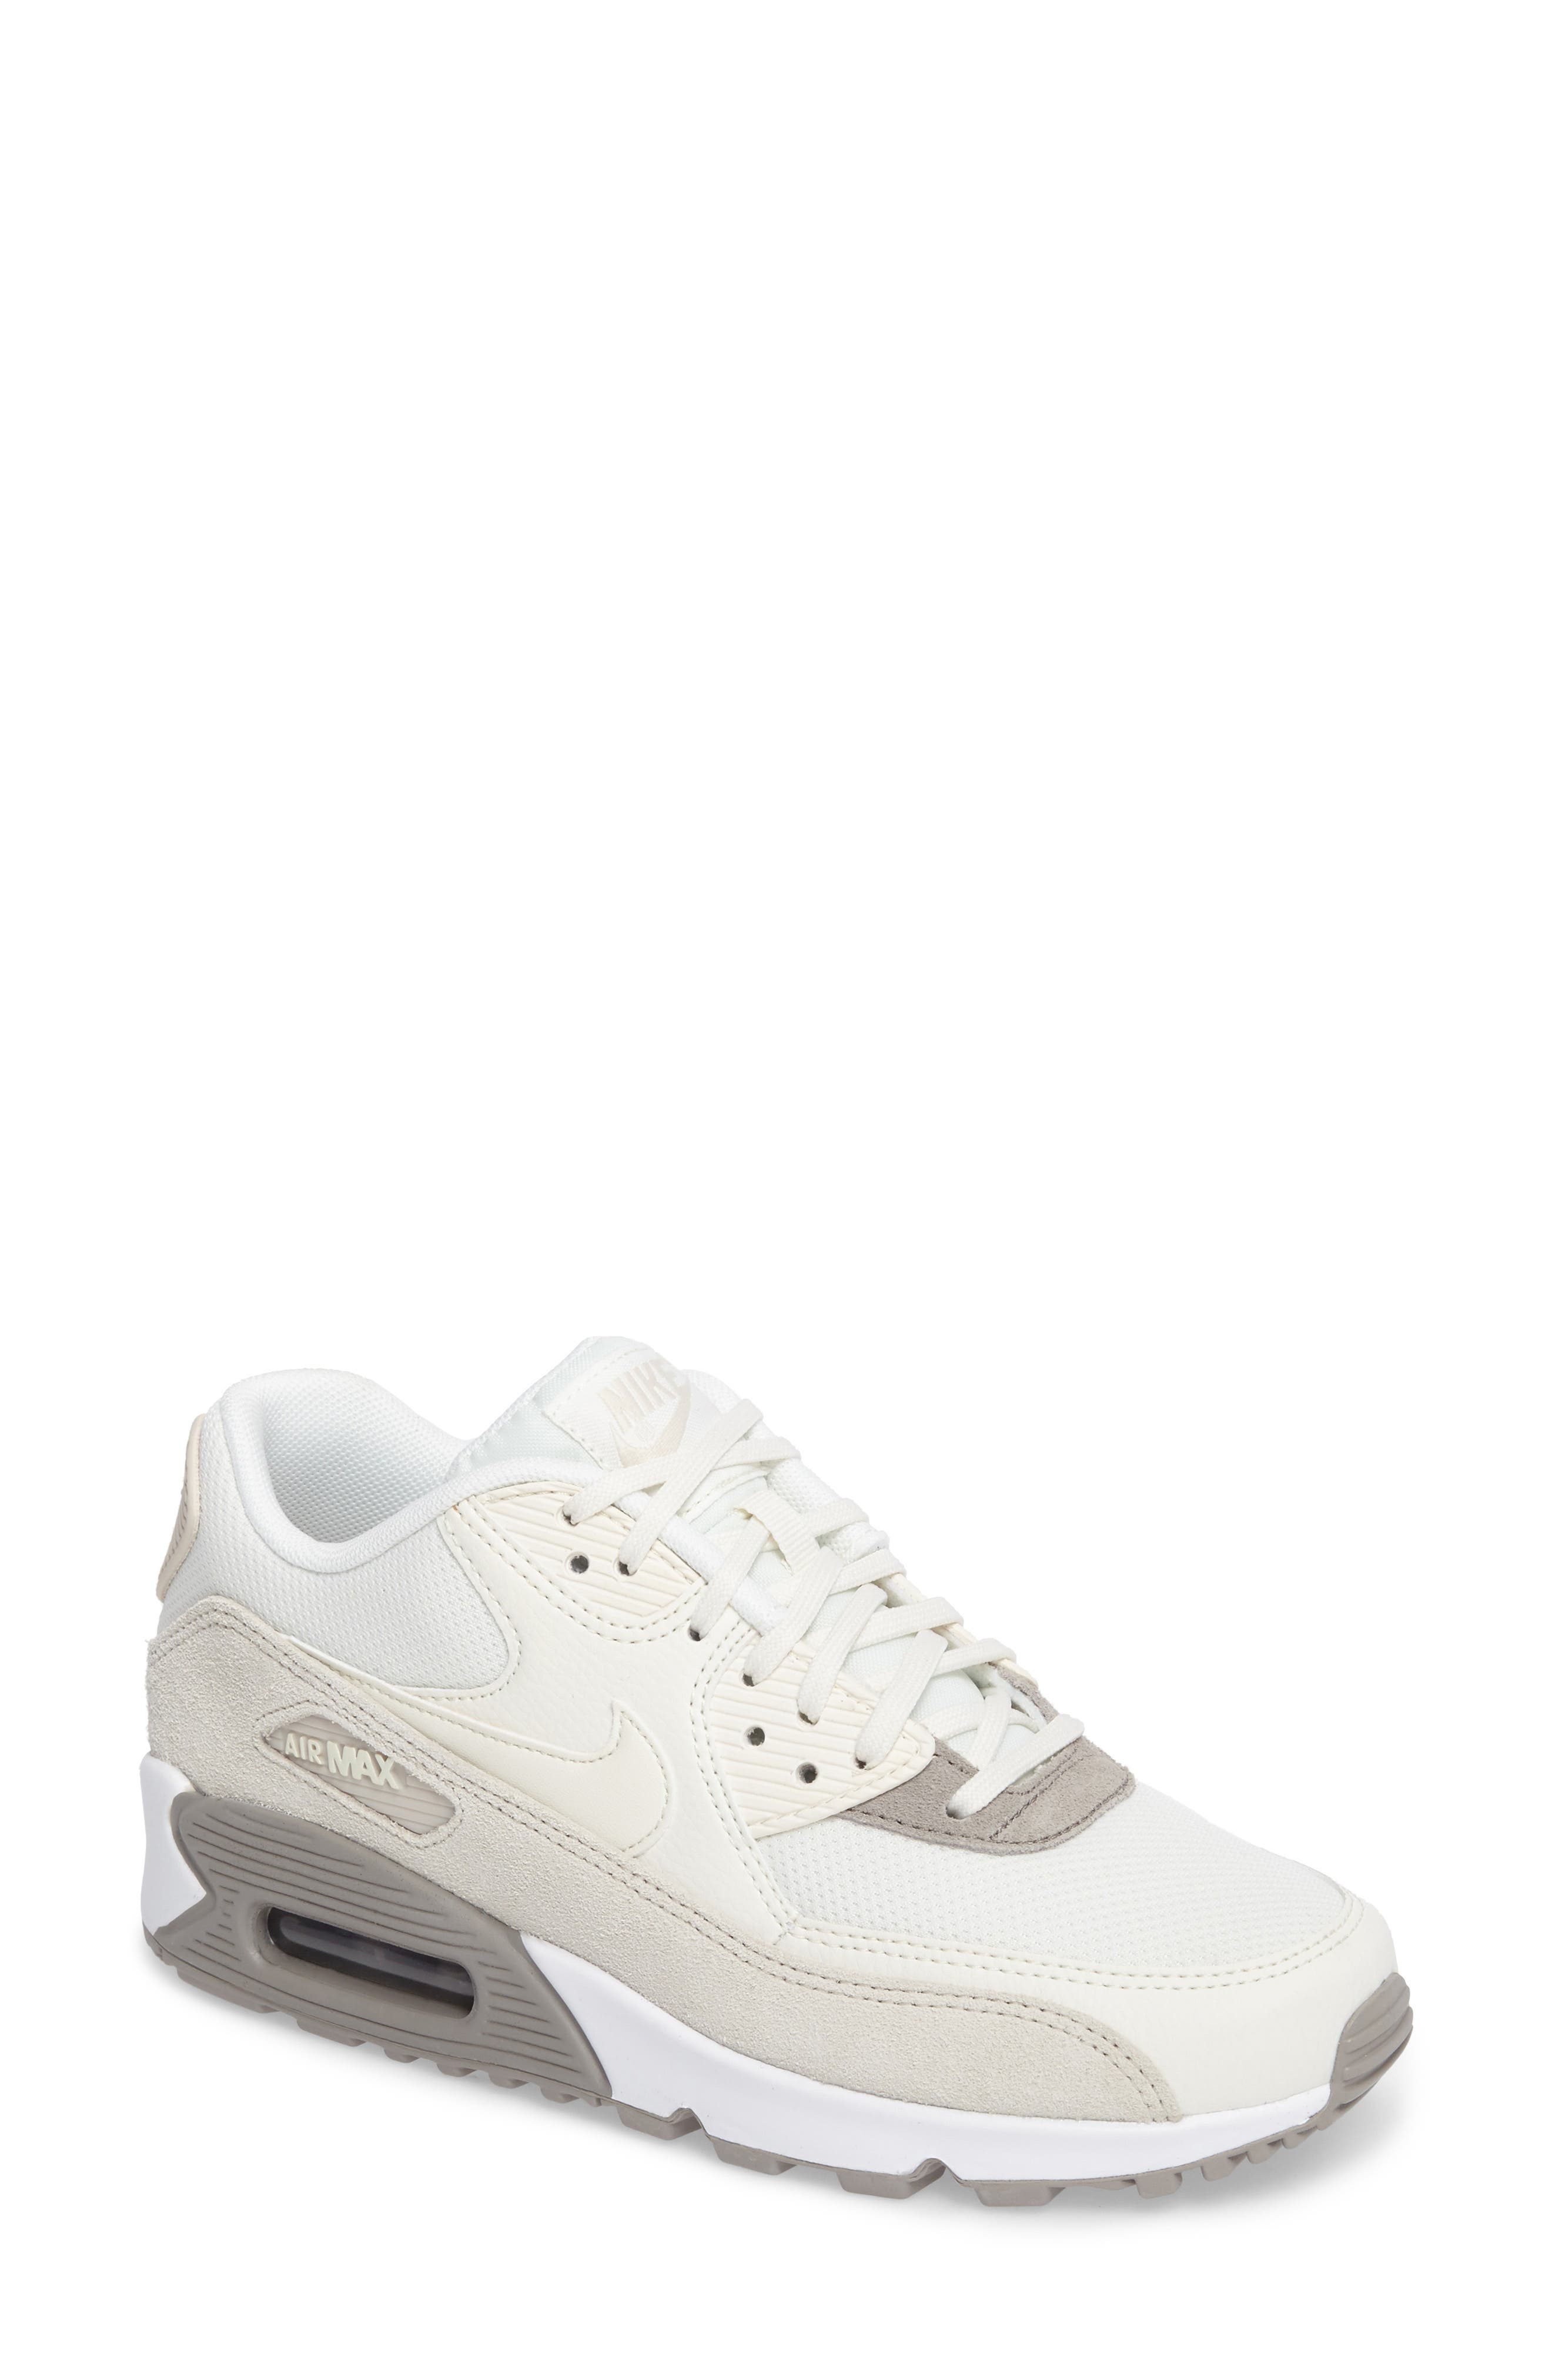 Alternate Image 1 Selected - Nike 'Air Max 90' Sneaker (Women)